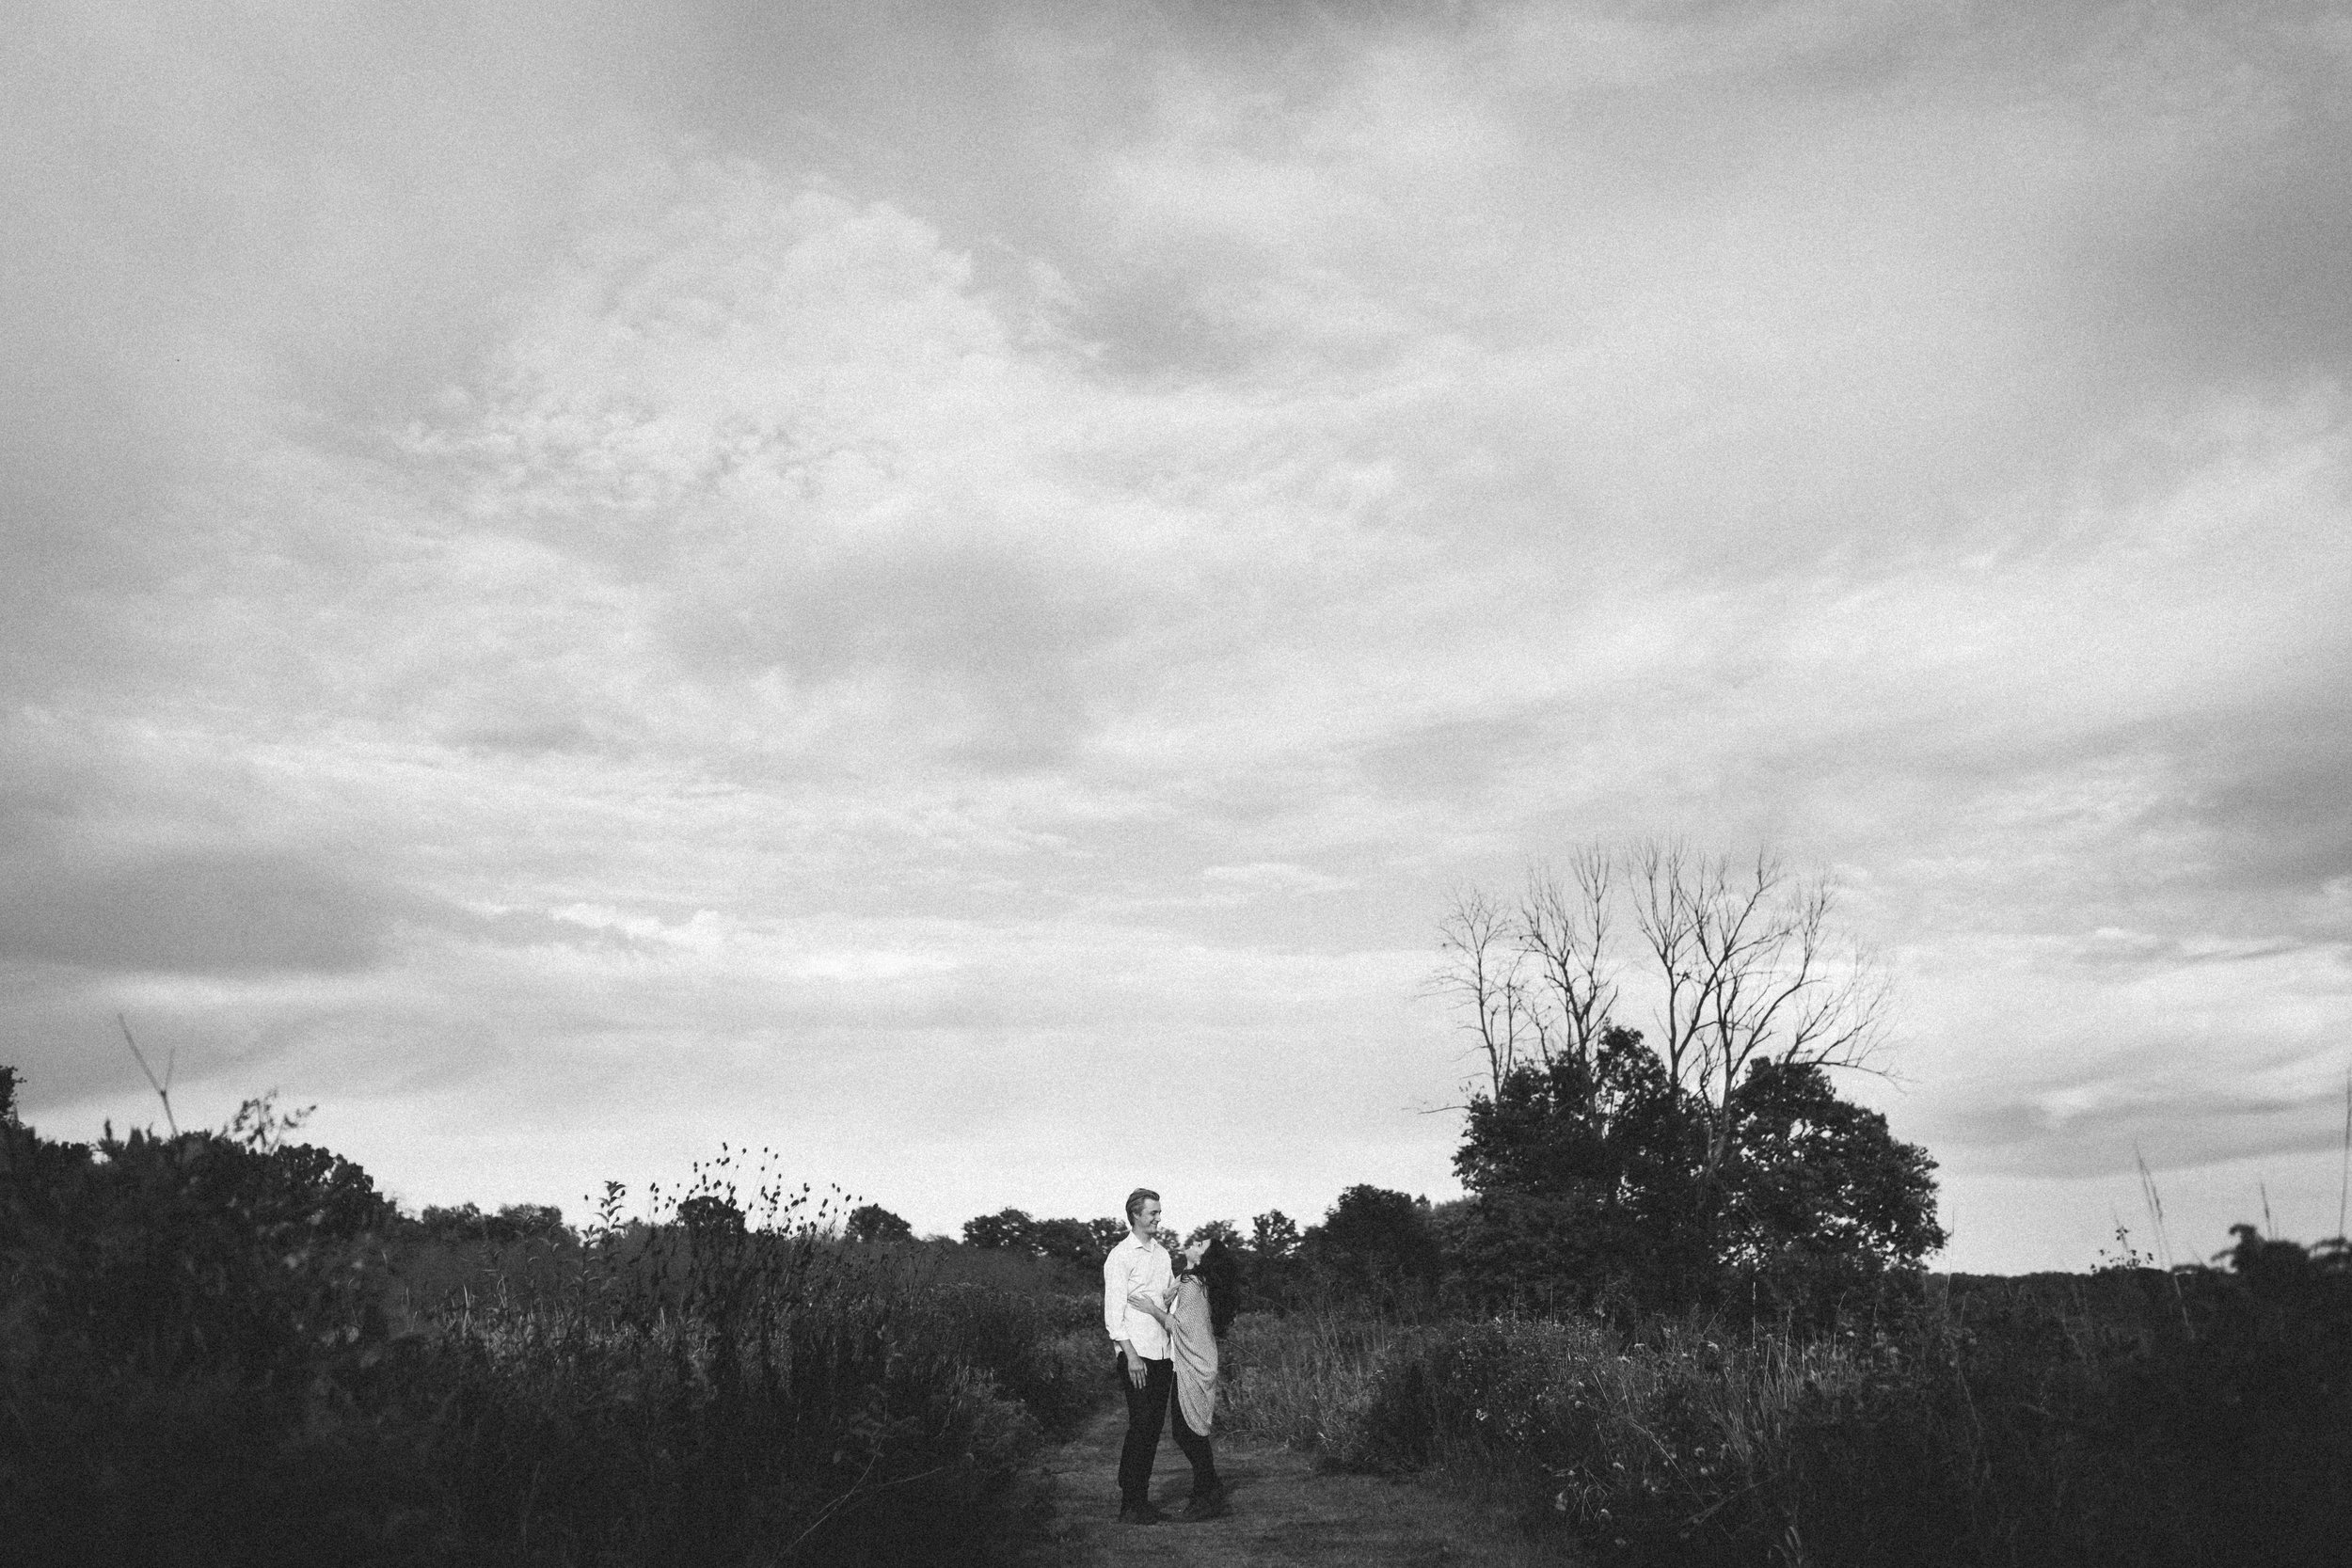 Claire-Rex-Pickar-Engagement-Photography-Collection-201.jpg